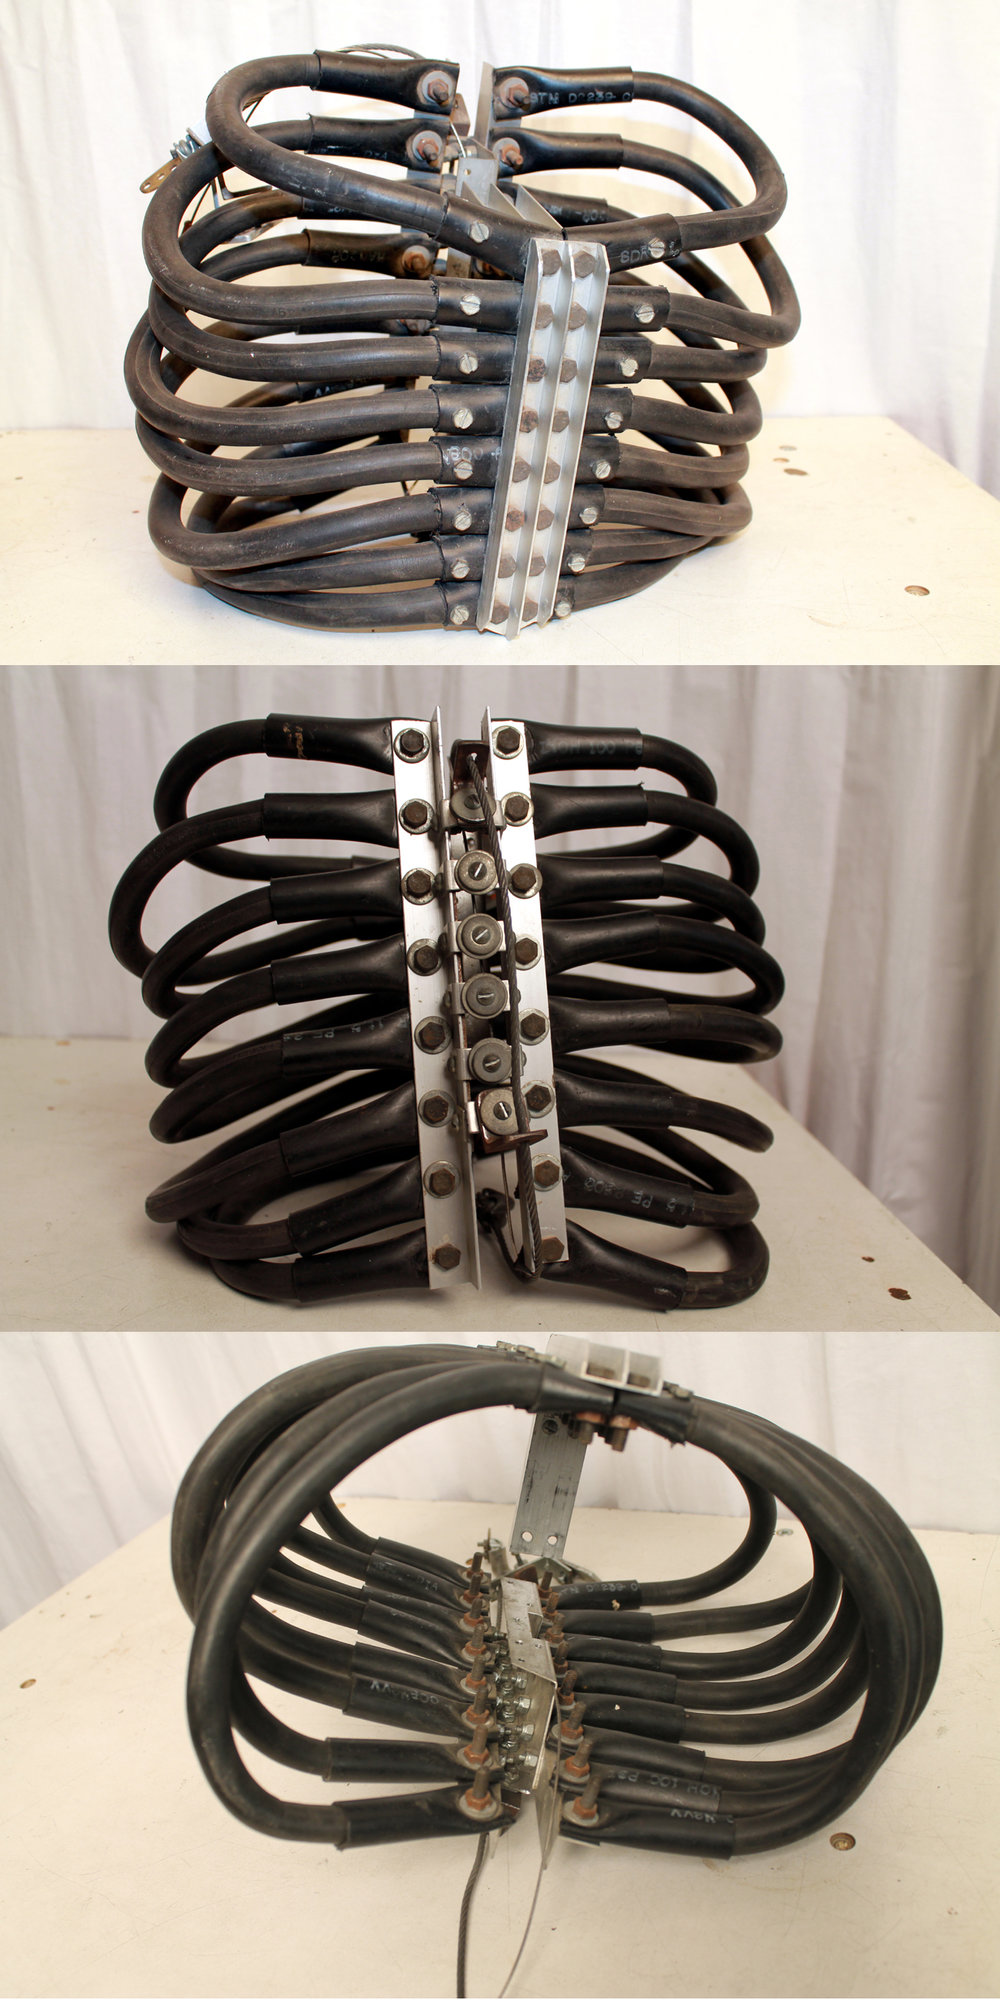 Rib cage Assembly